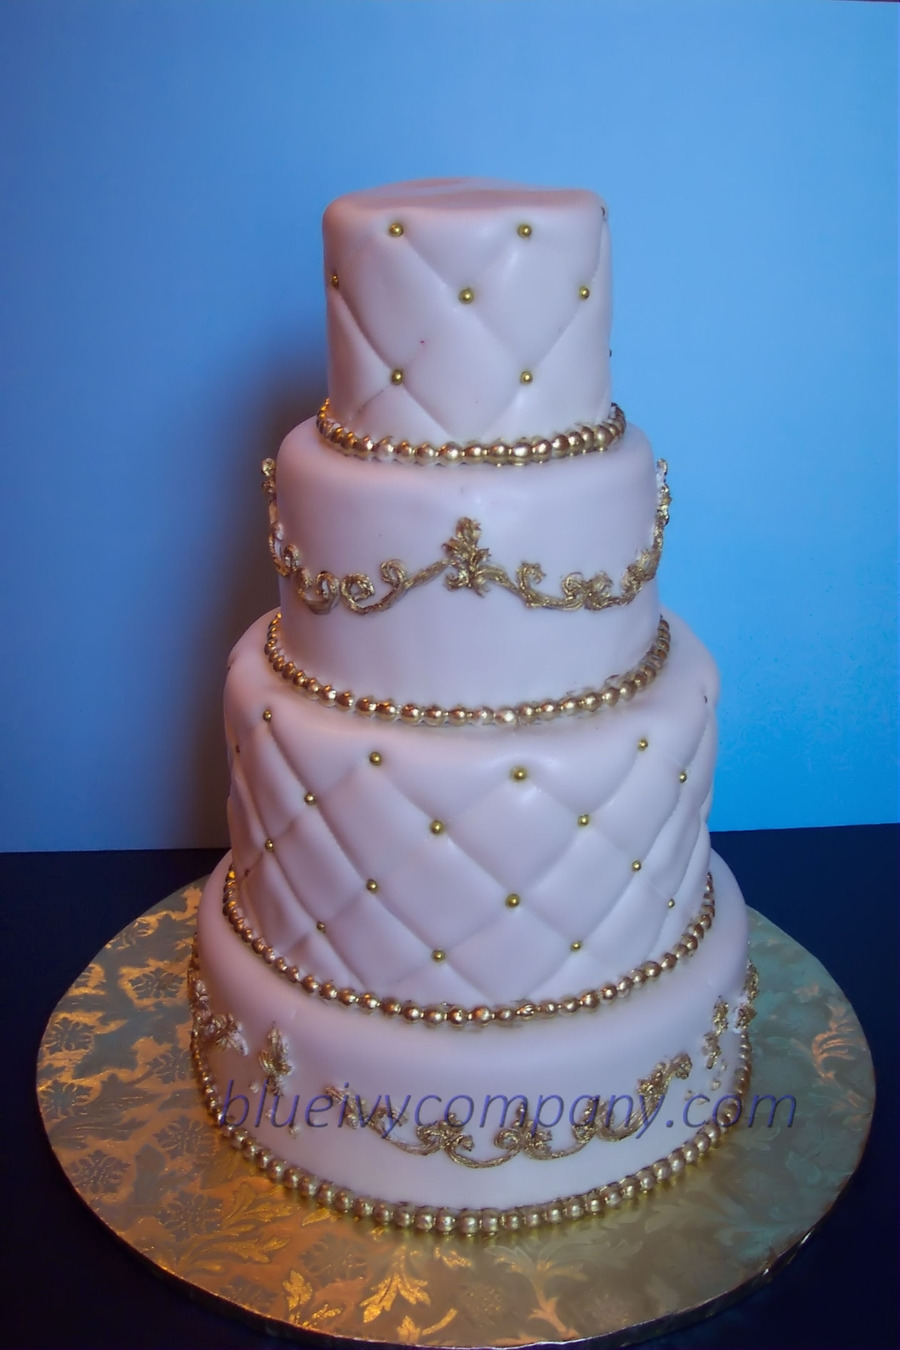 white and gold wedding cake images white amp gold wedding cake cakecentral 27206